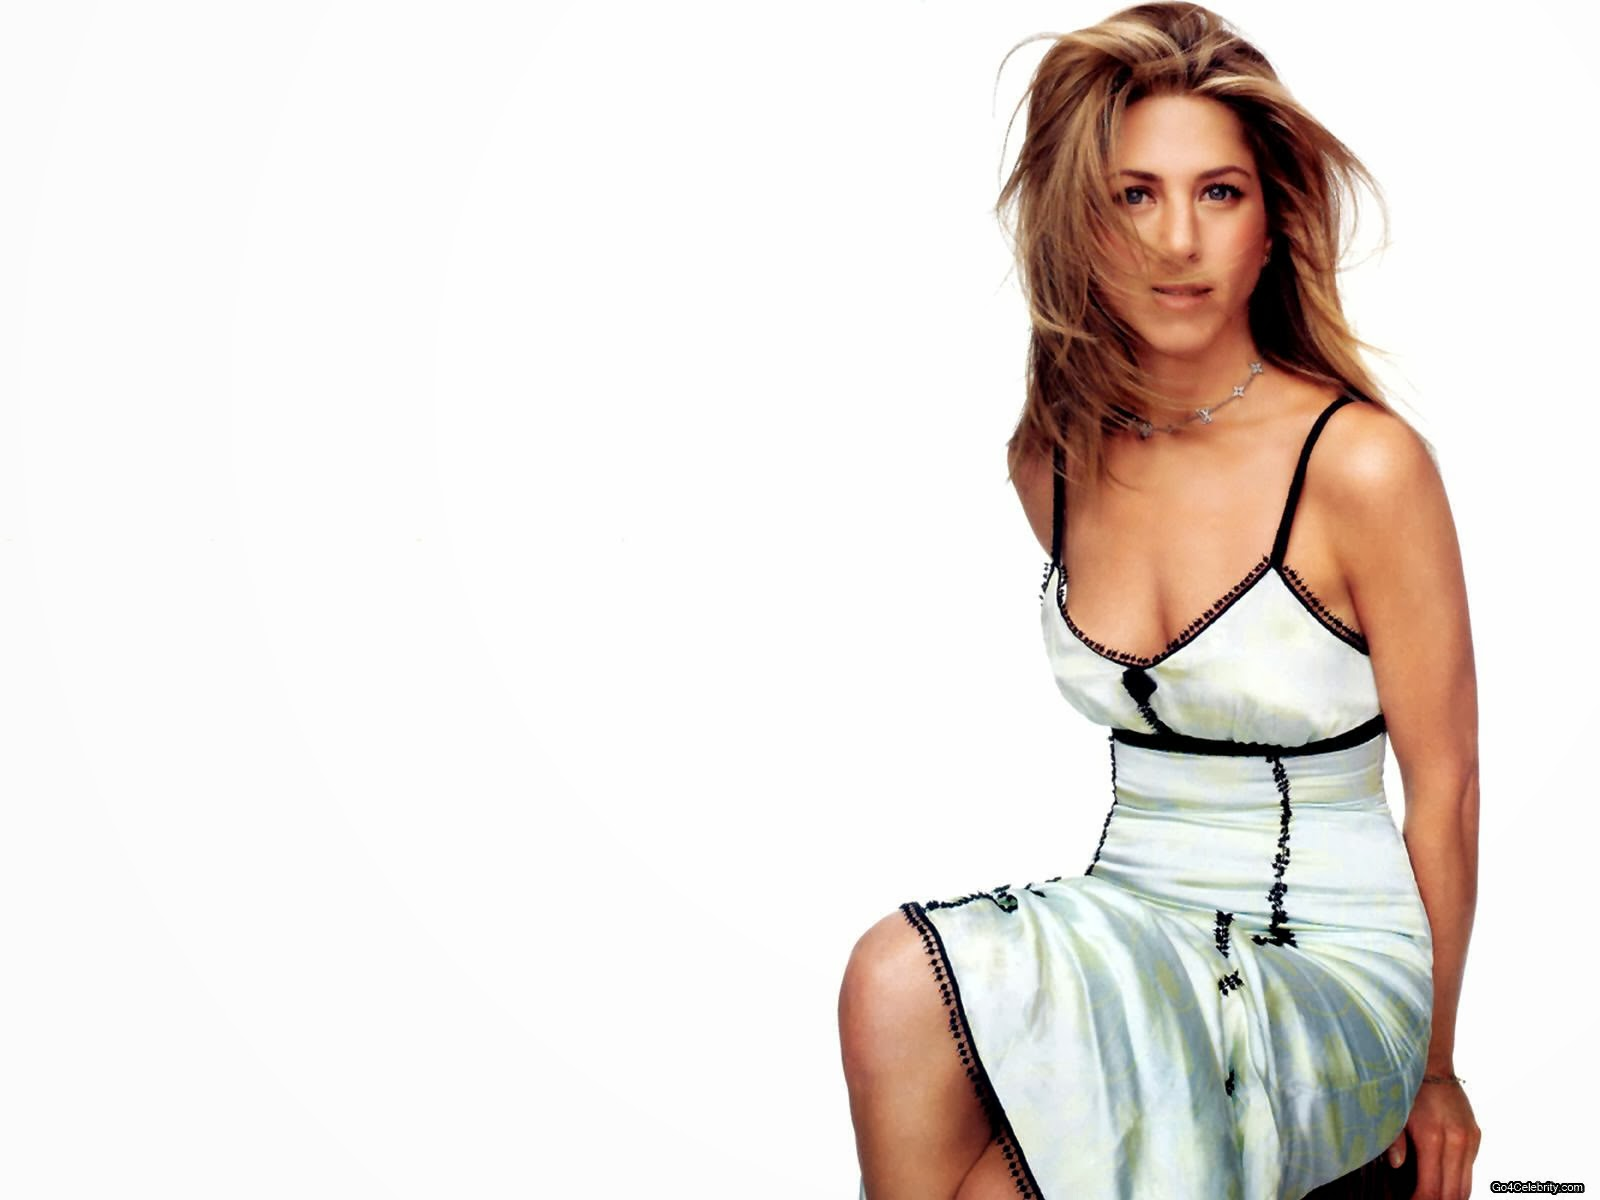 jennifer aniston hot wallpapers hd wallpapers